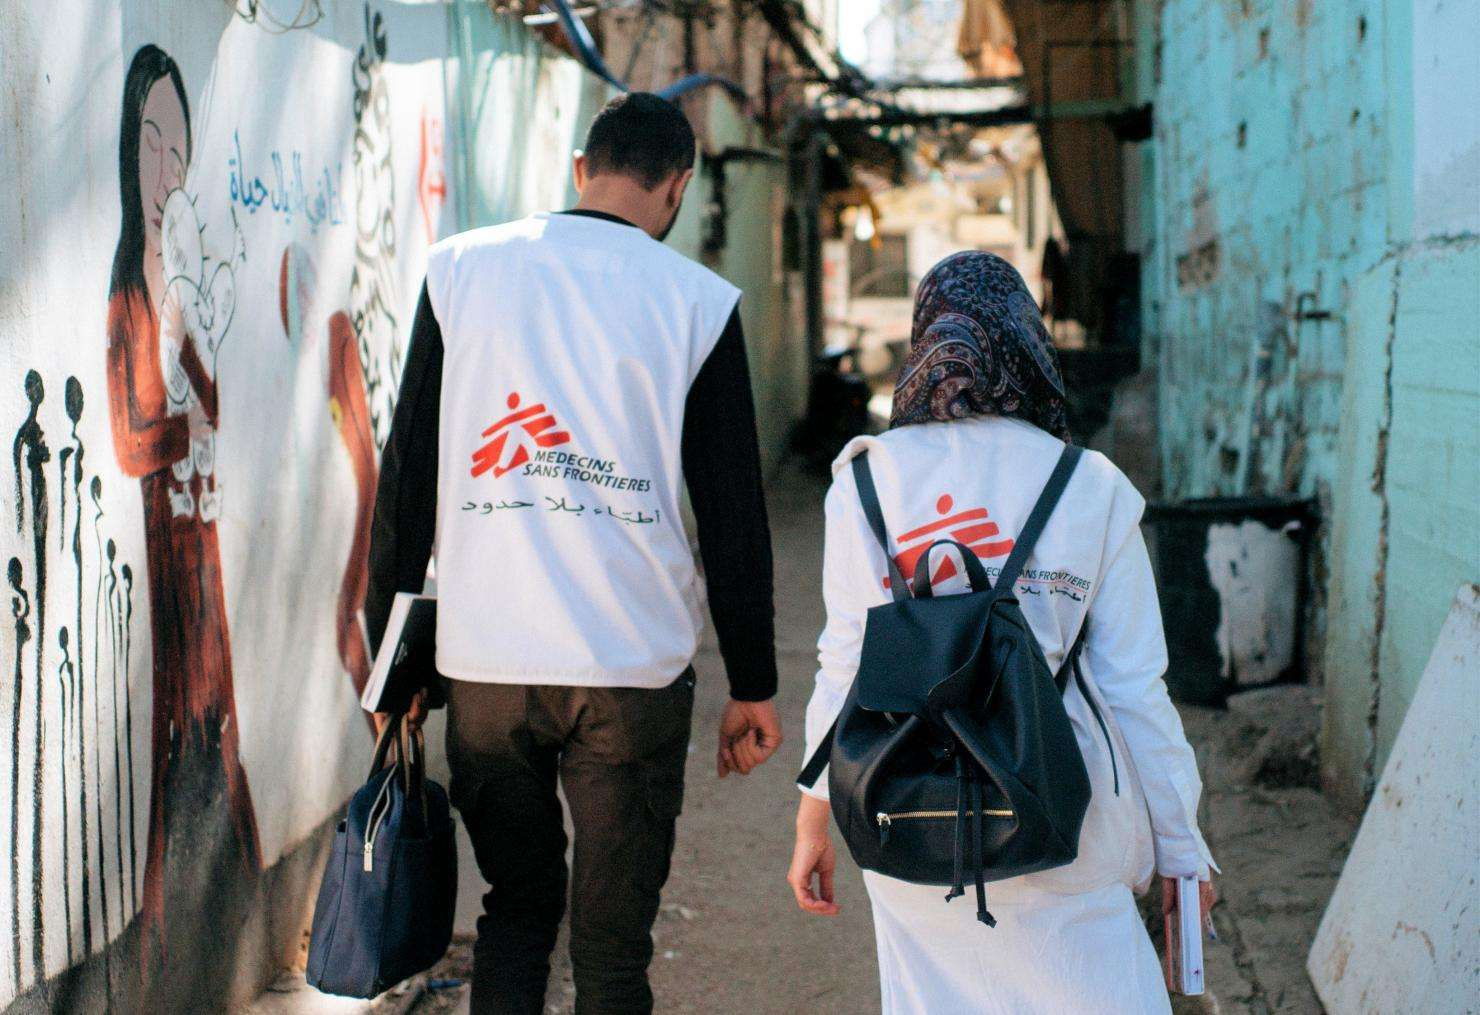 MSF field workers provides home-based care to around 170 elderly women and men with chronic diseases and mobility problems living inside the Burj el-Barajneh refugee camp.